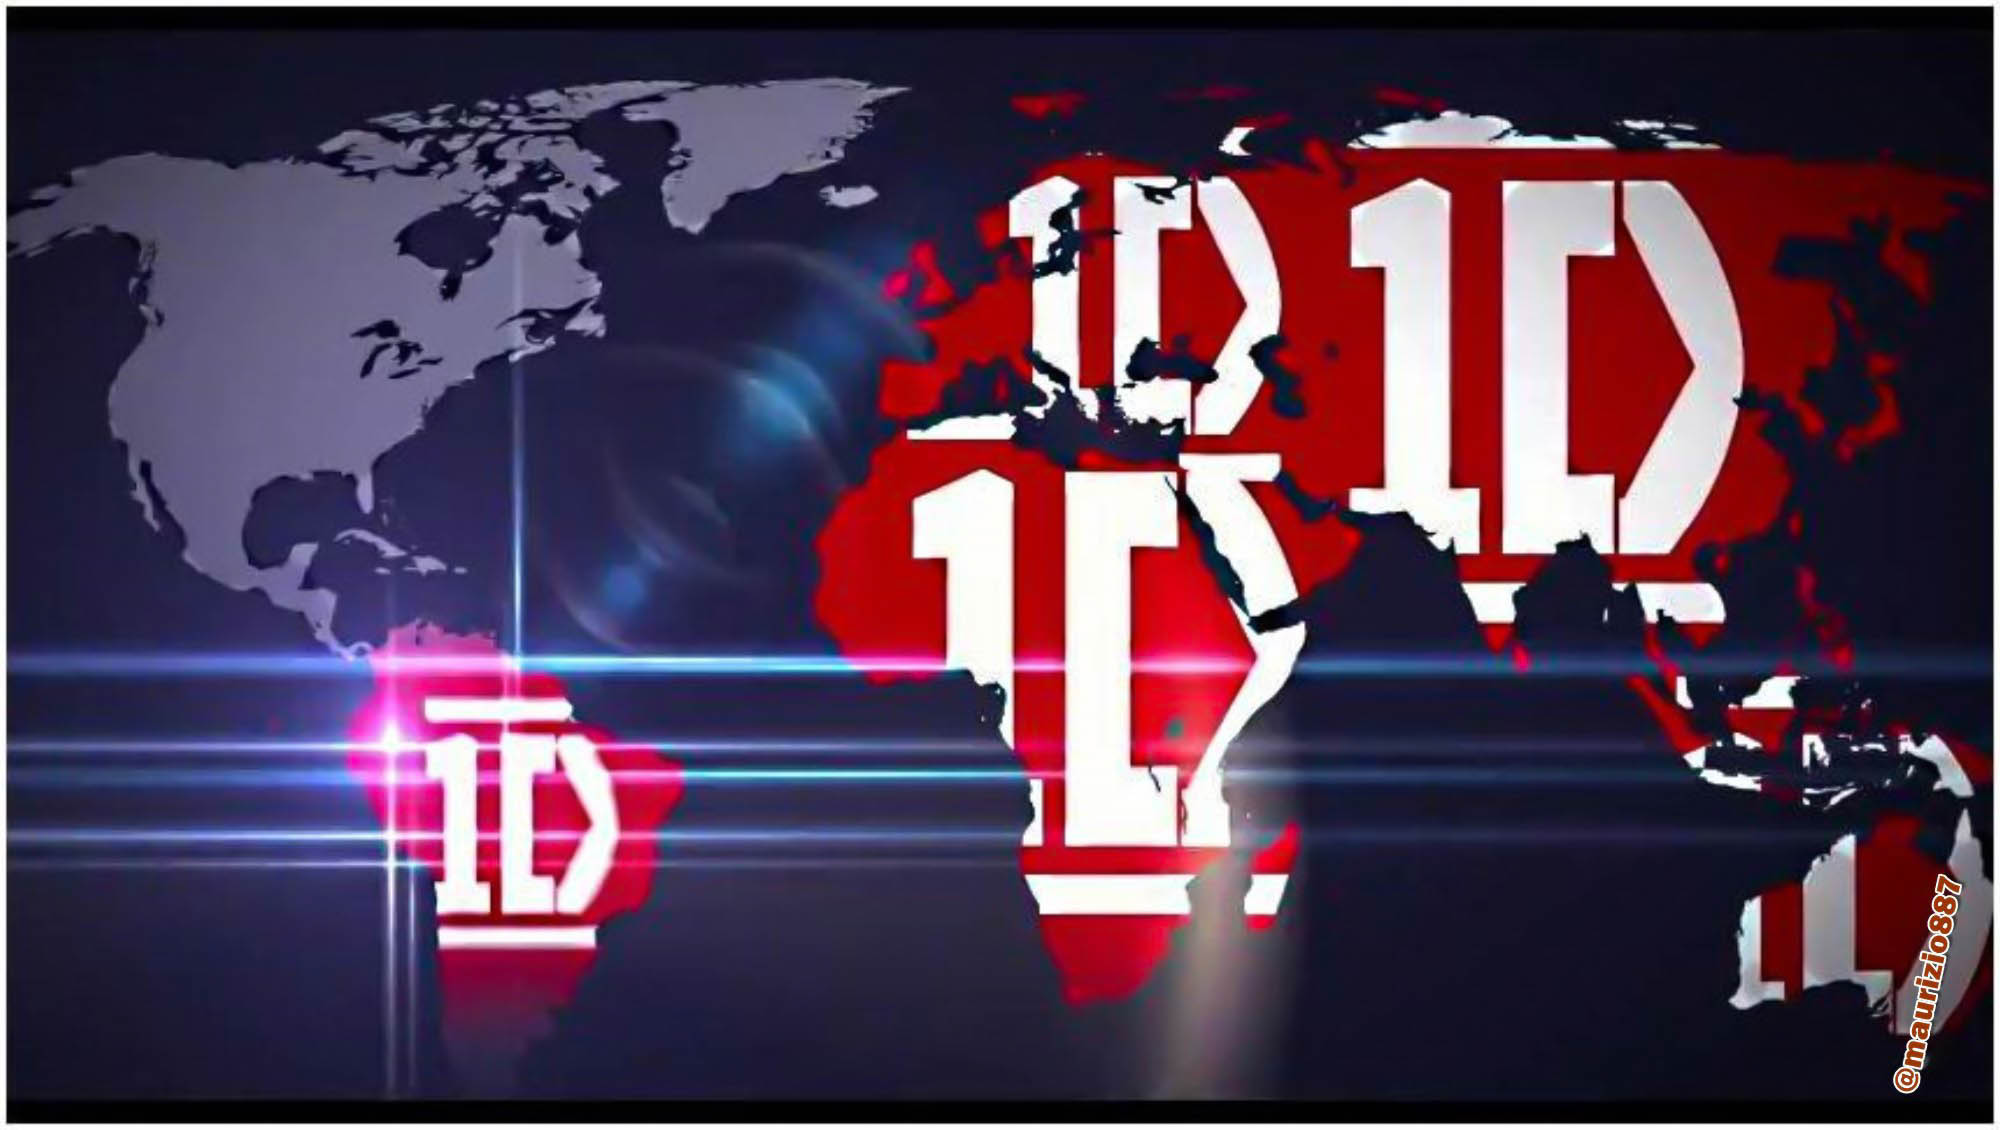 http://images6.fanpop.com/image/photos/34800000/One-Direction-1D-This-Is-Us-Movie-Trailer-2013-one-direction-34832995-2000-1130.jpg